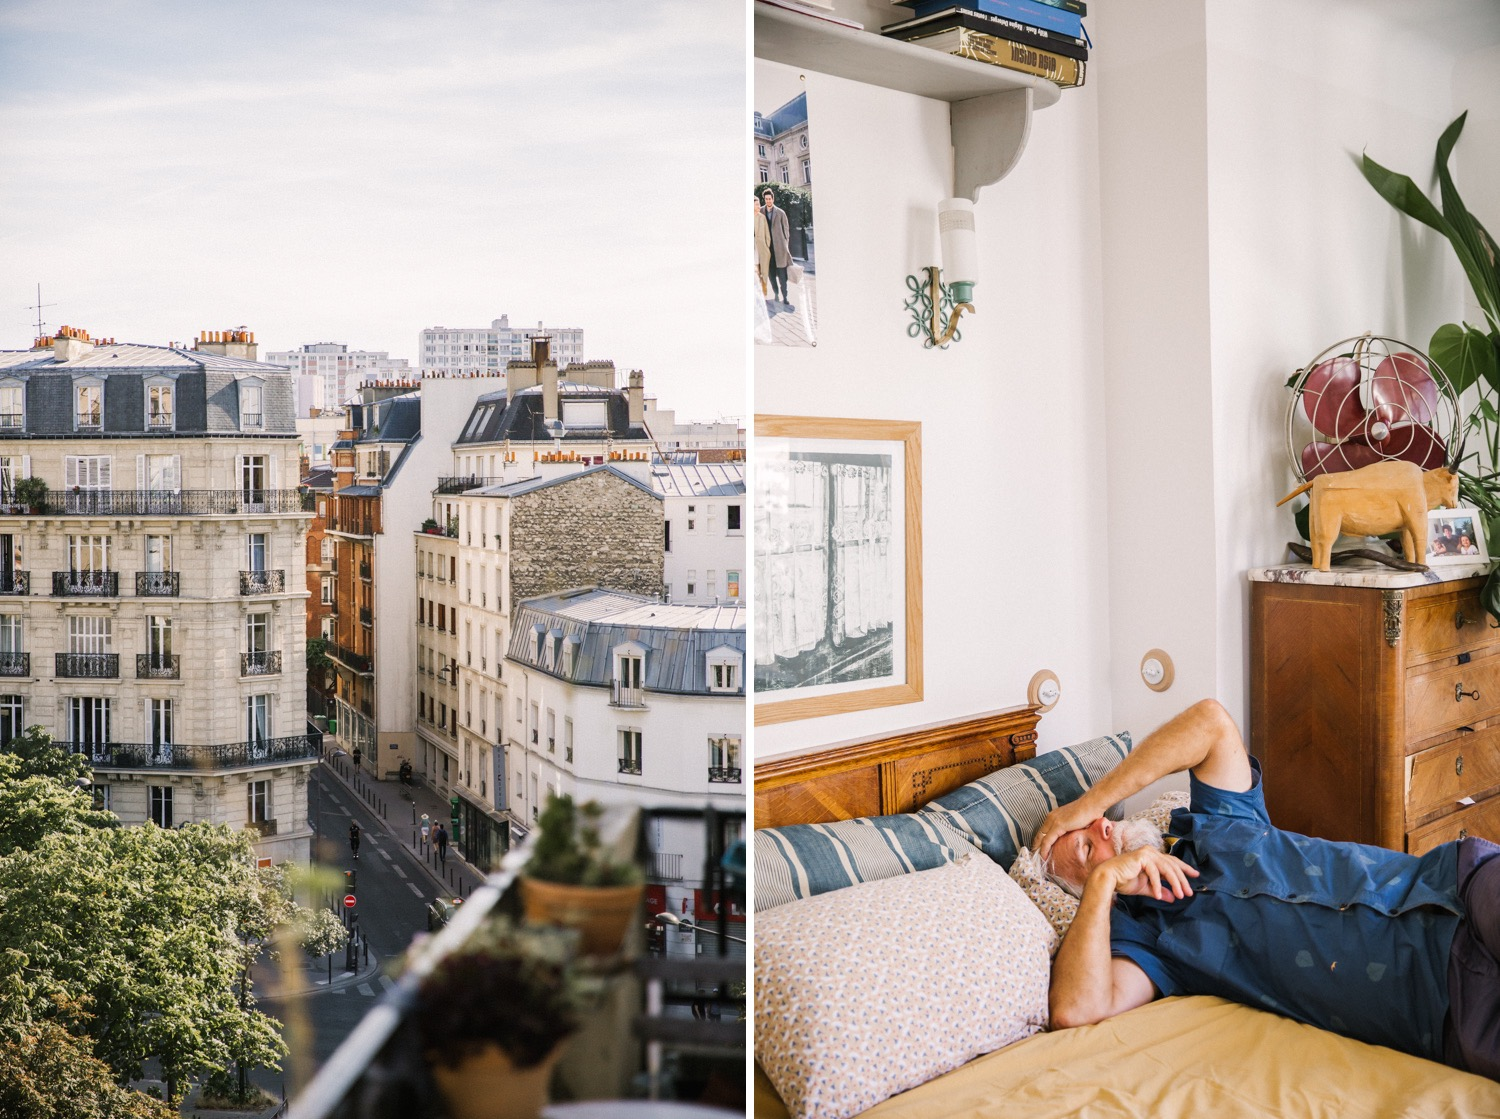 The view from our apartment in Paris and one very tired grandpa.